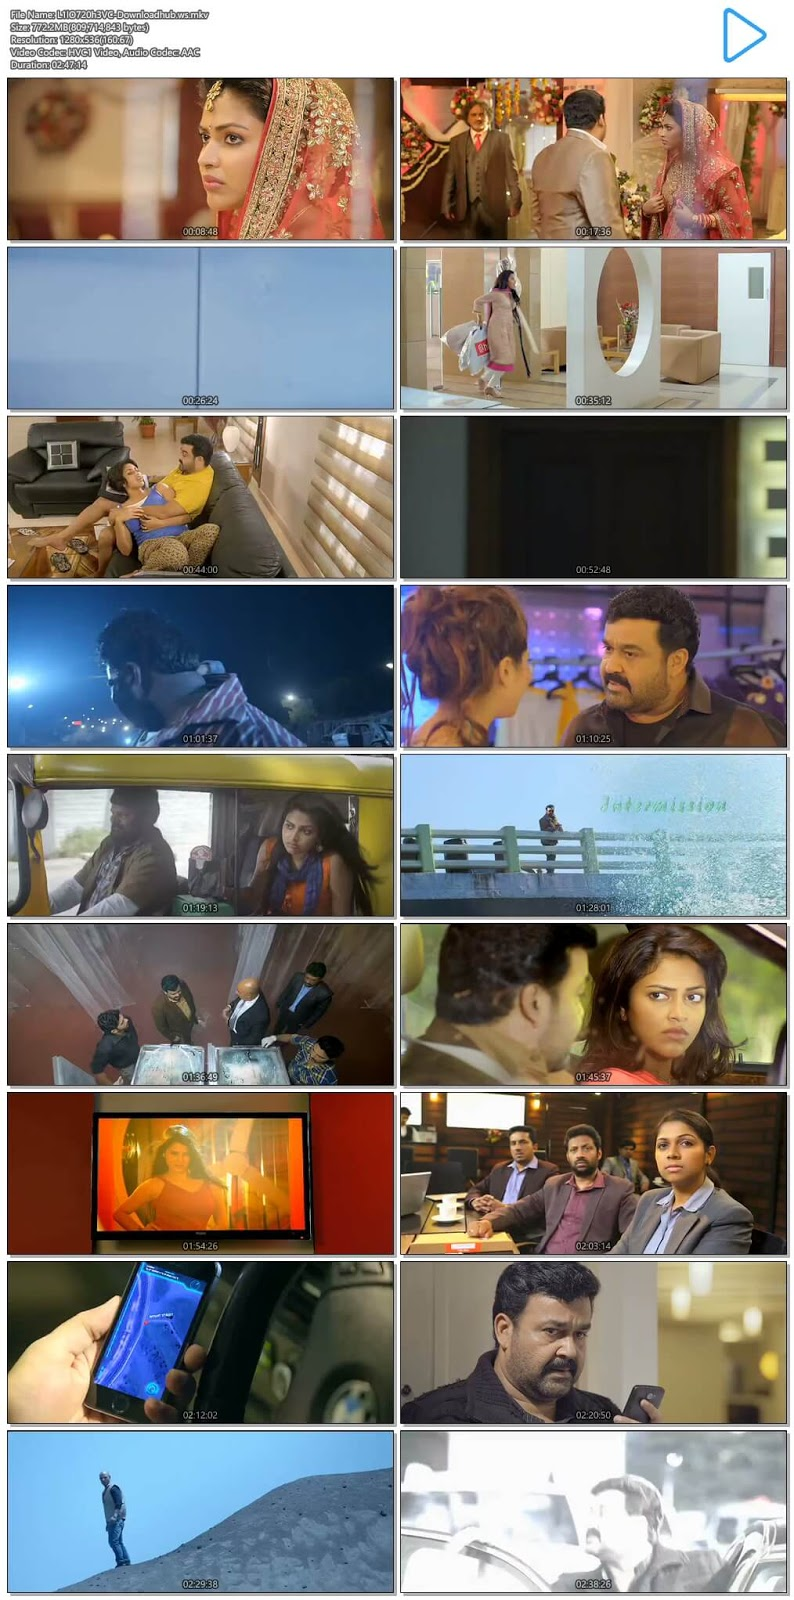 Lailaa O Lailaa 2015 UNCUT Hindi Dual Audio 720p HEVC DVDRip Download